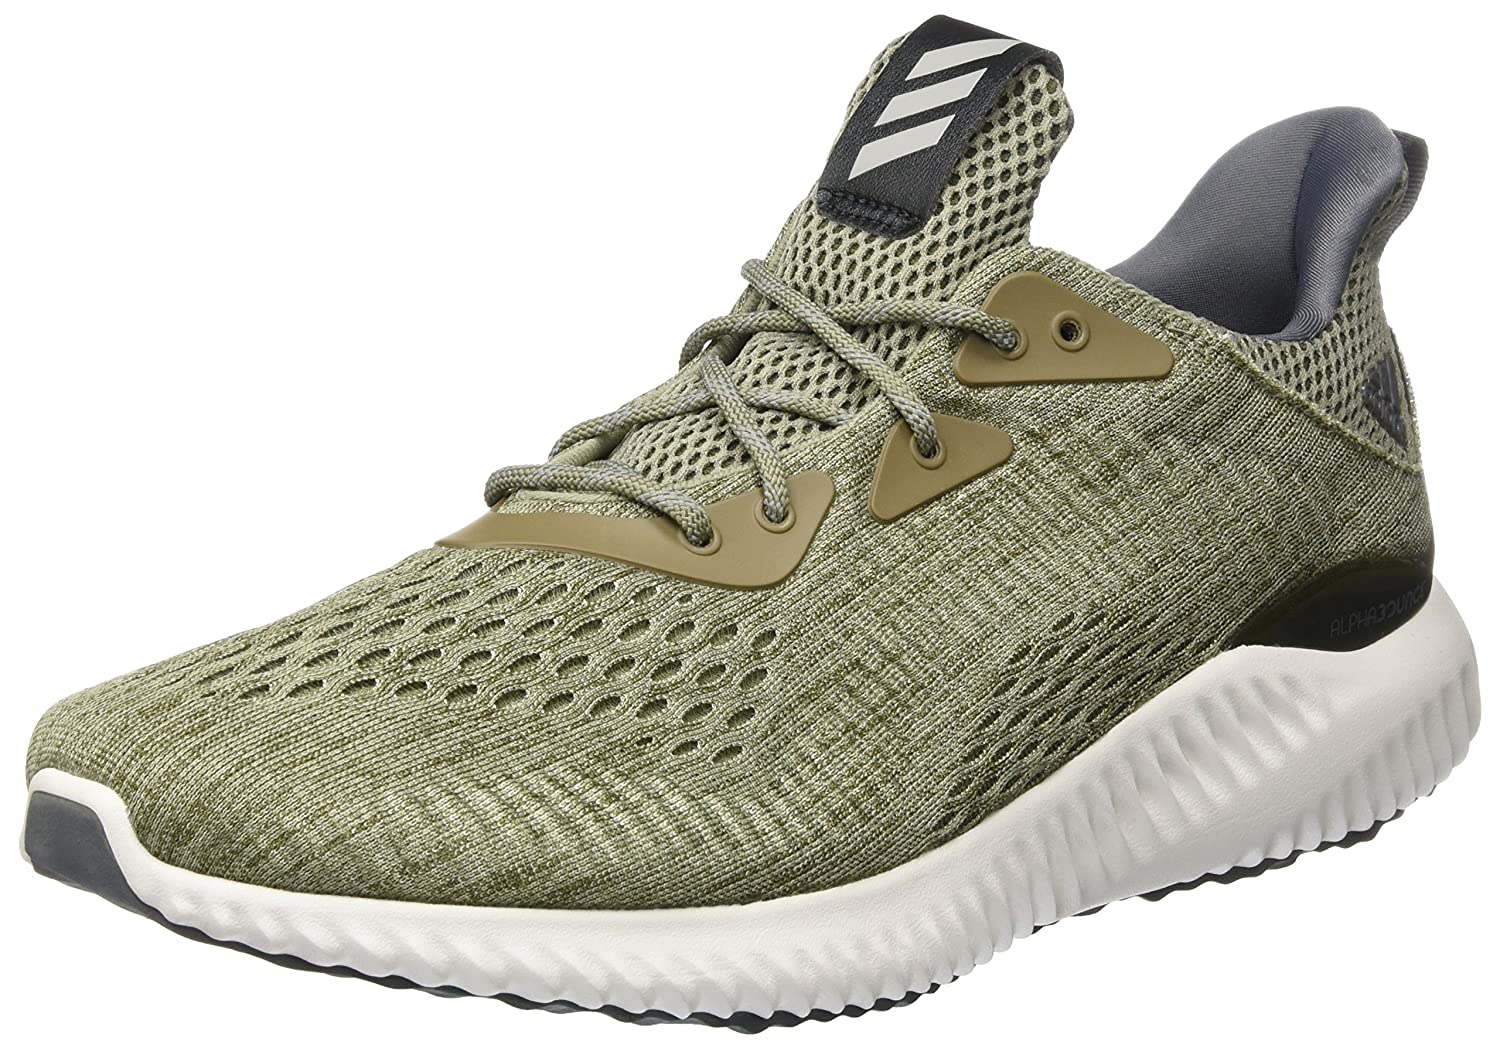 a75eb2266 Adidas Men s Alphabounce Em M Olive Running Shoes-6 UK India (39.33 EU)  (BW1203)  Buy Online at Low Prices in India - Amazon.in